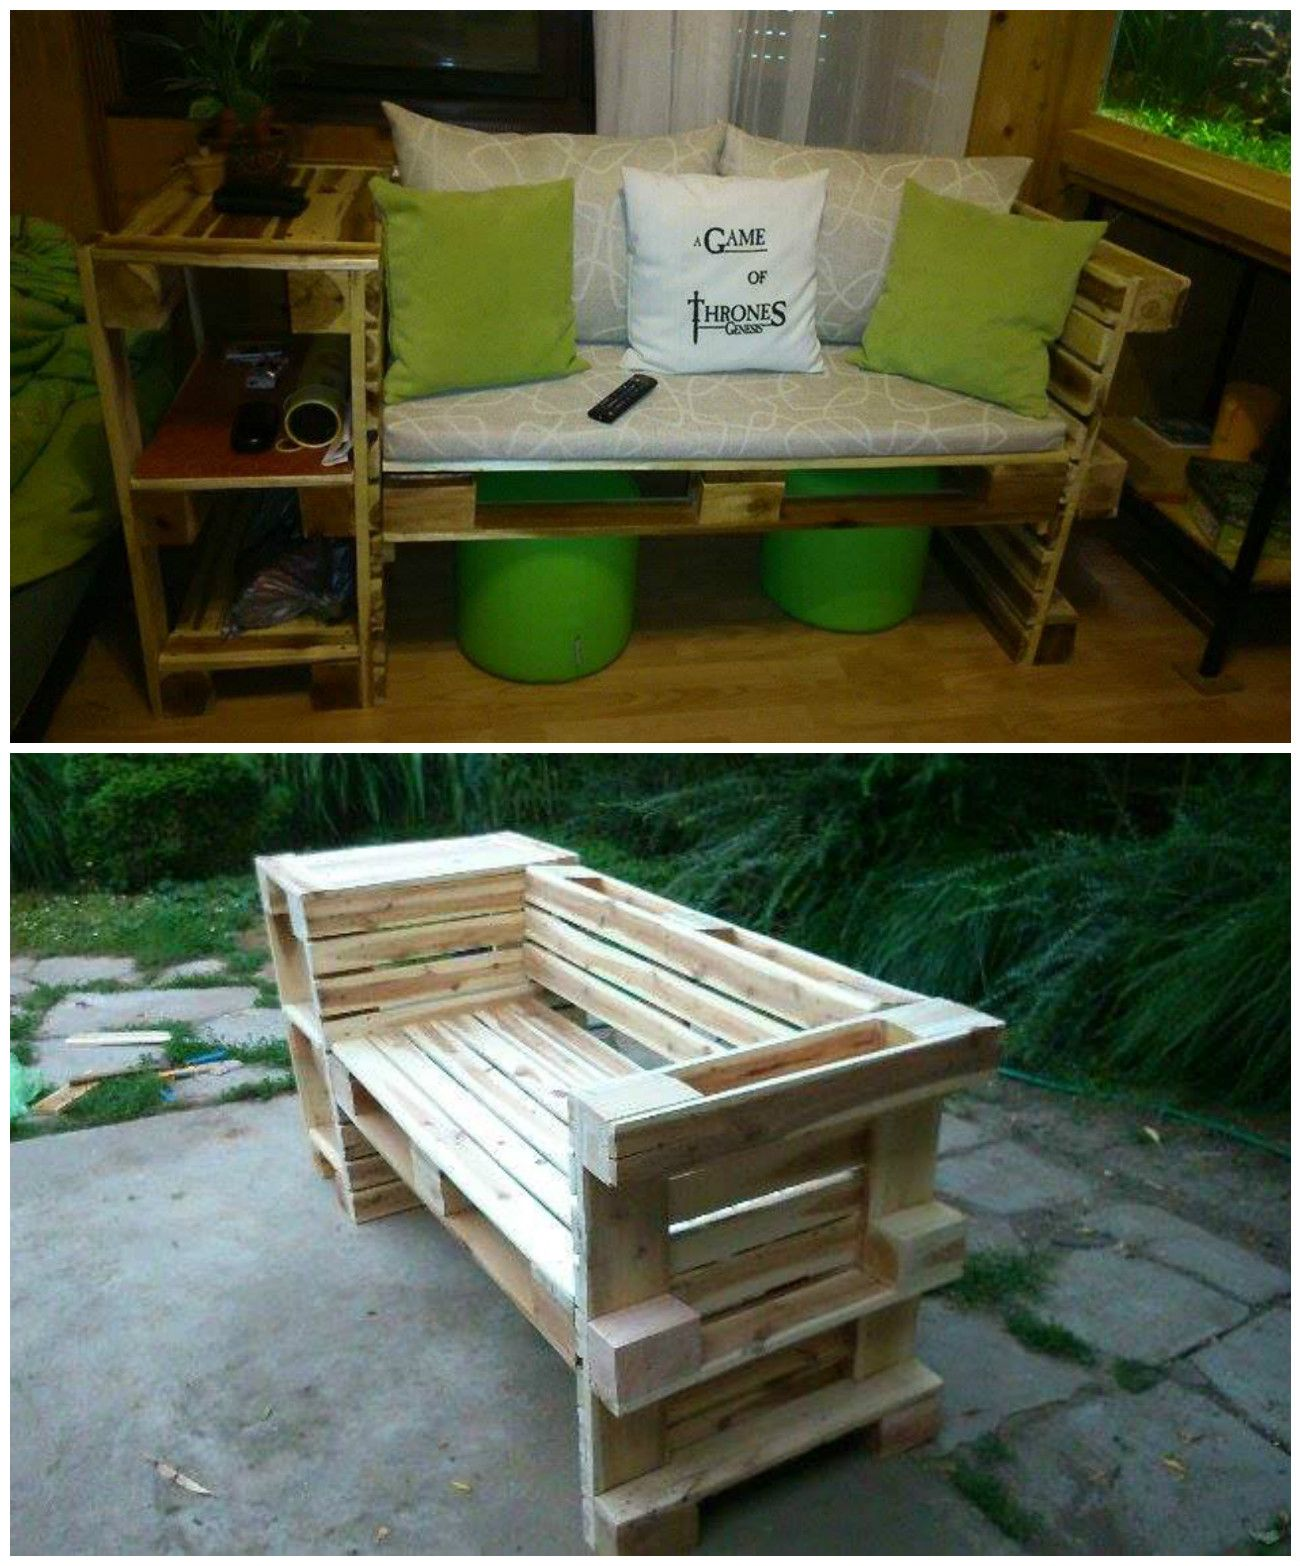 I made this couch from 3 recycled wooden pallets. I made it because I wanted a new furniture in my room. I really enjoyed it and I'm still tinkering a lot